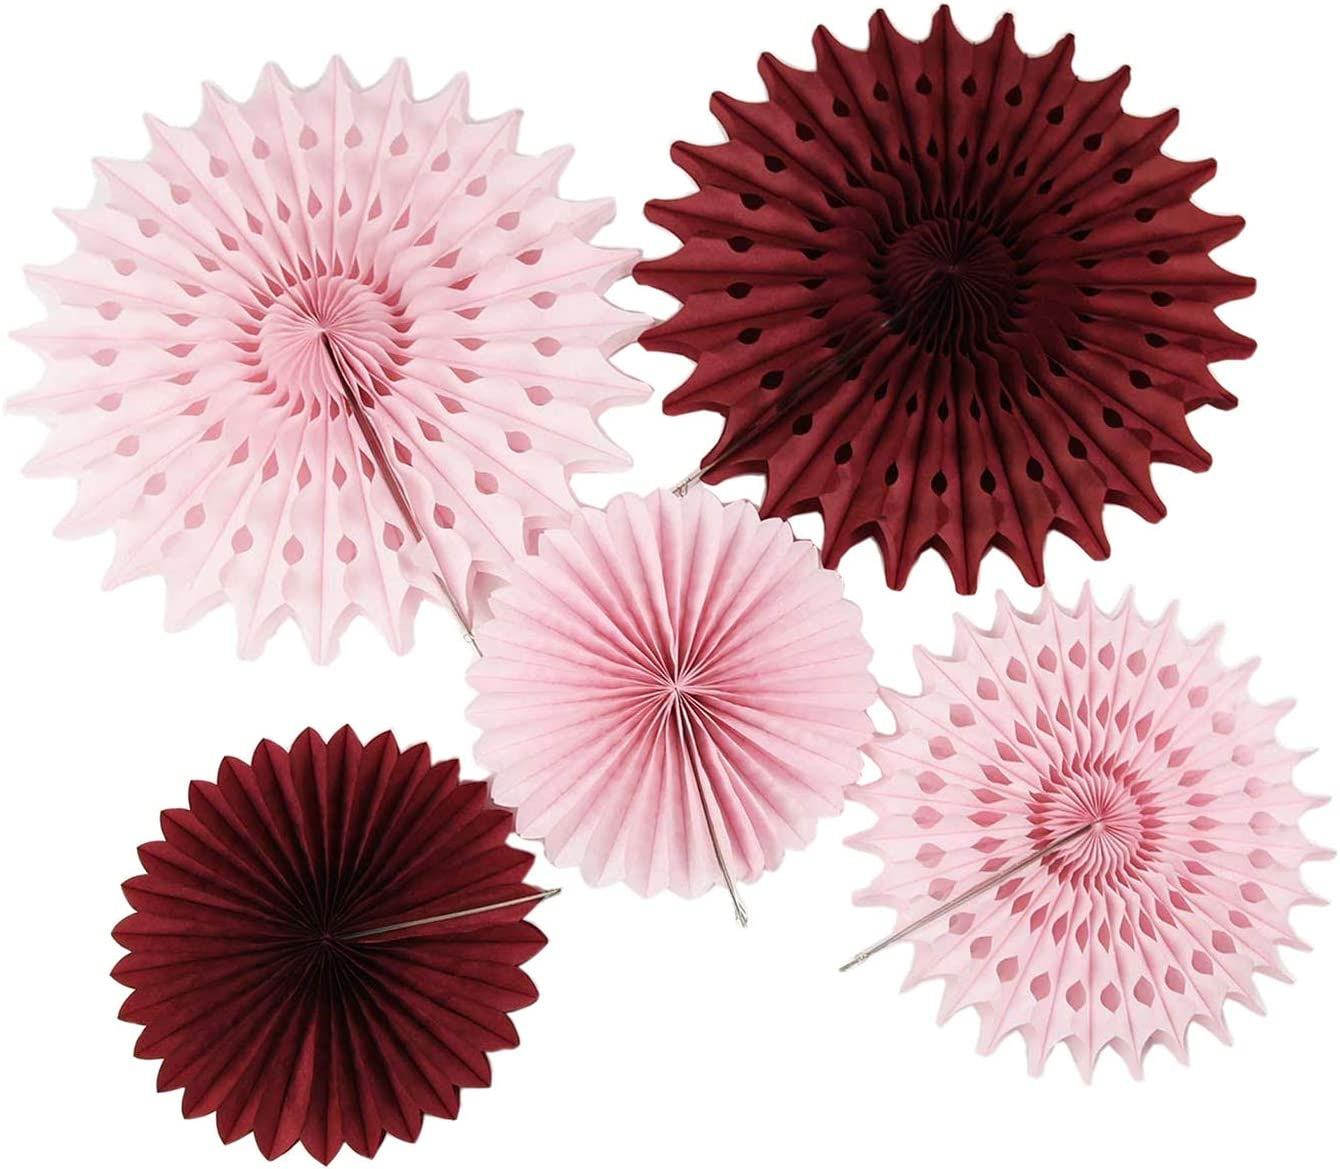 Burgundy Pink Birthday Party Decorations Fall/ 7pcs Burgundy Cream Pink Pinwheels Tissue Paper Fans Fall Bachelorette Party Decorations/Burgundy Wedding/Bridal Shower Decorations